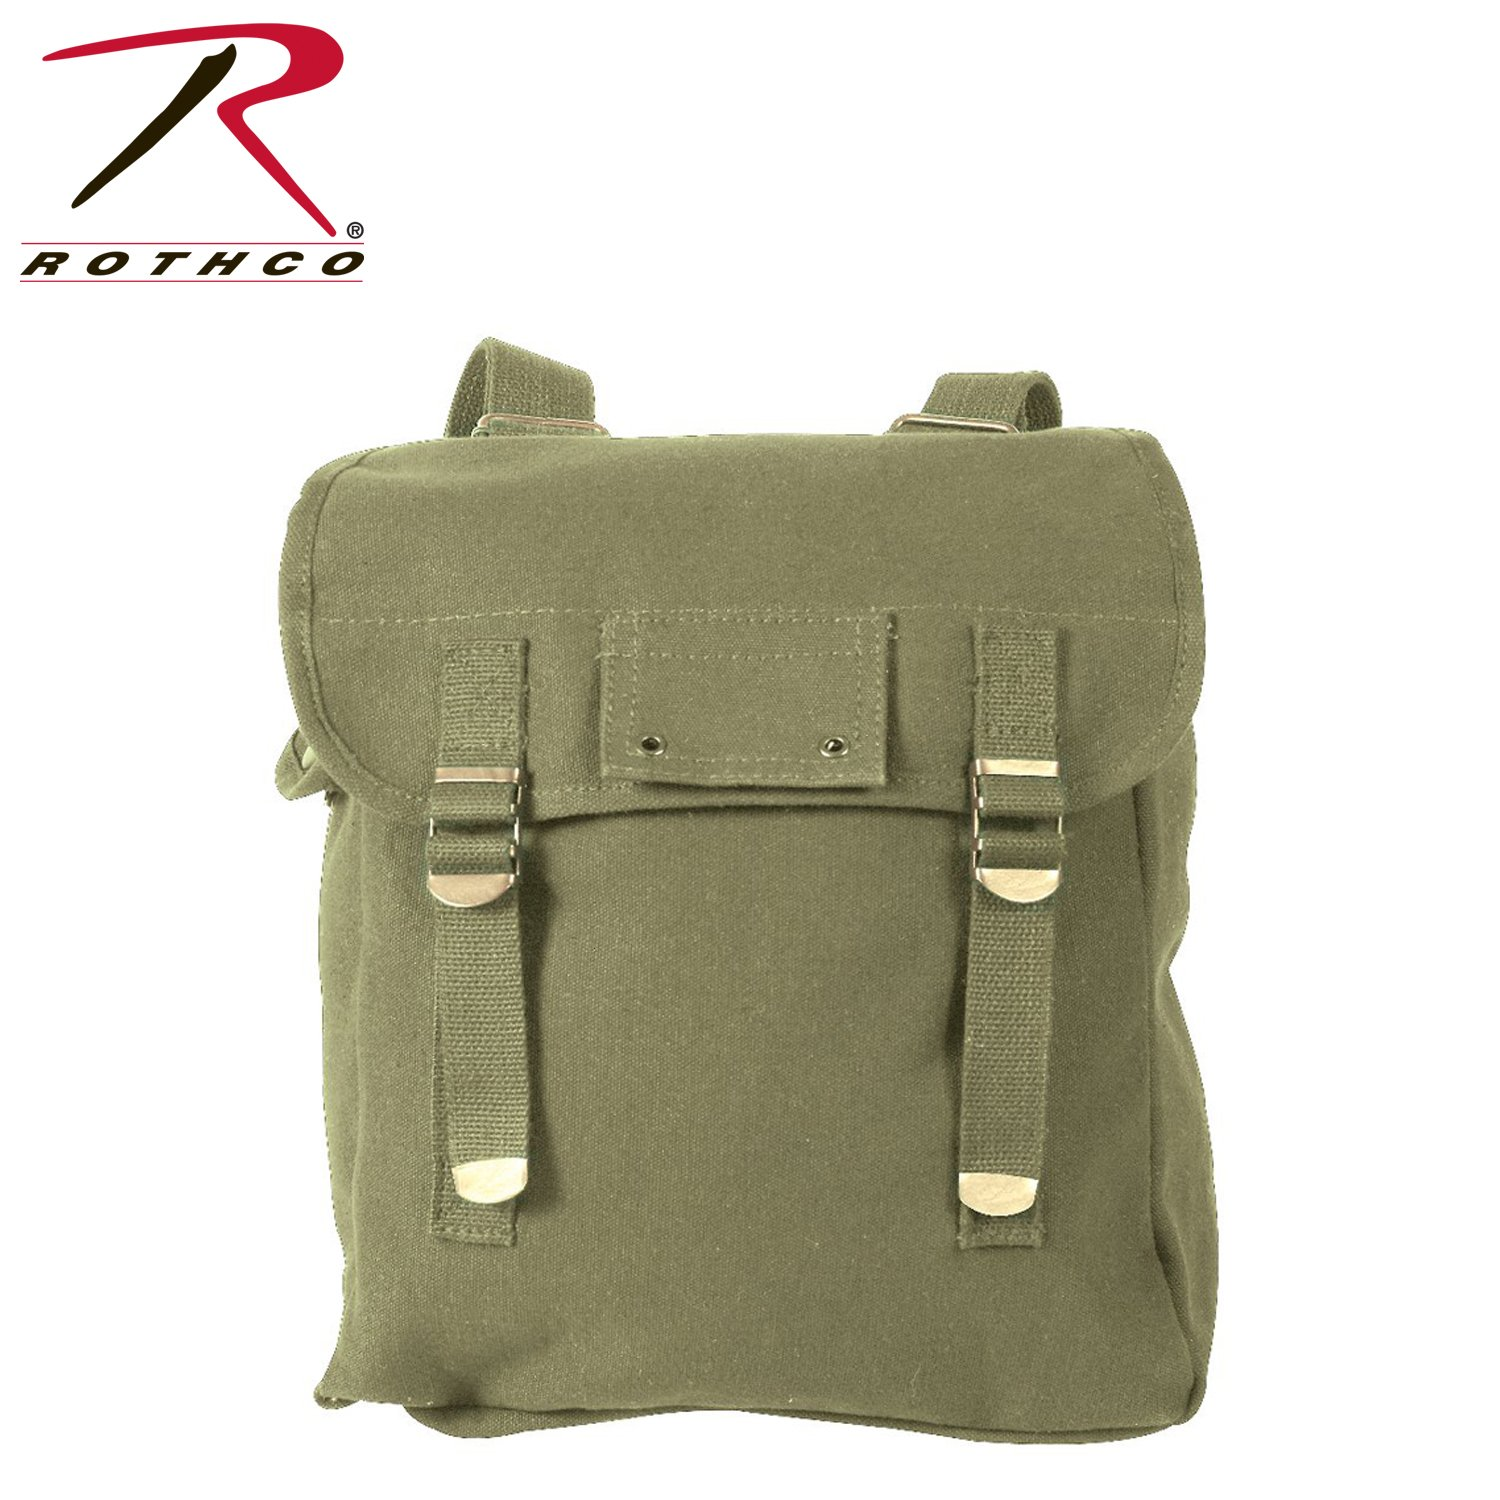 Rothco Heavyweight Canvas Musette Bag, Olive Drab by Rothco